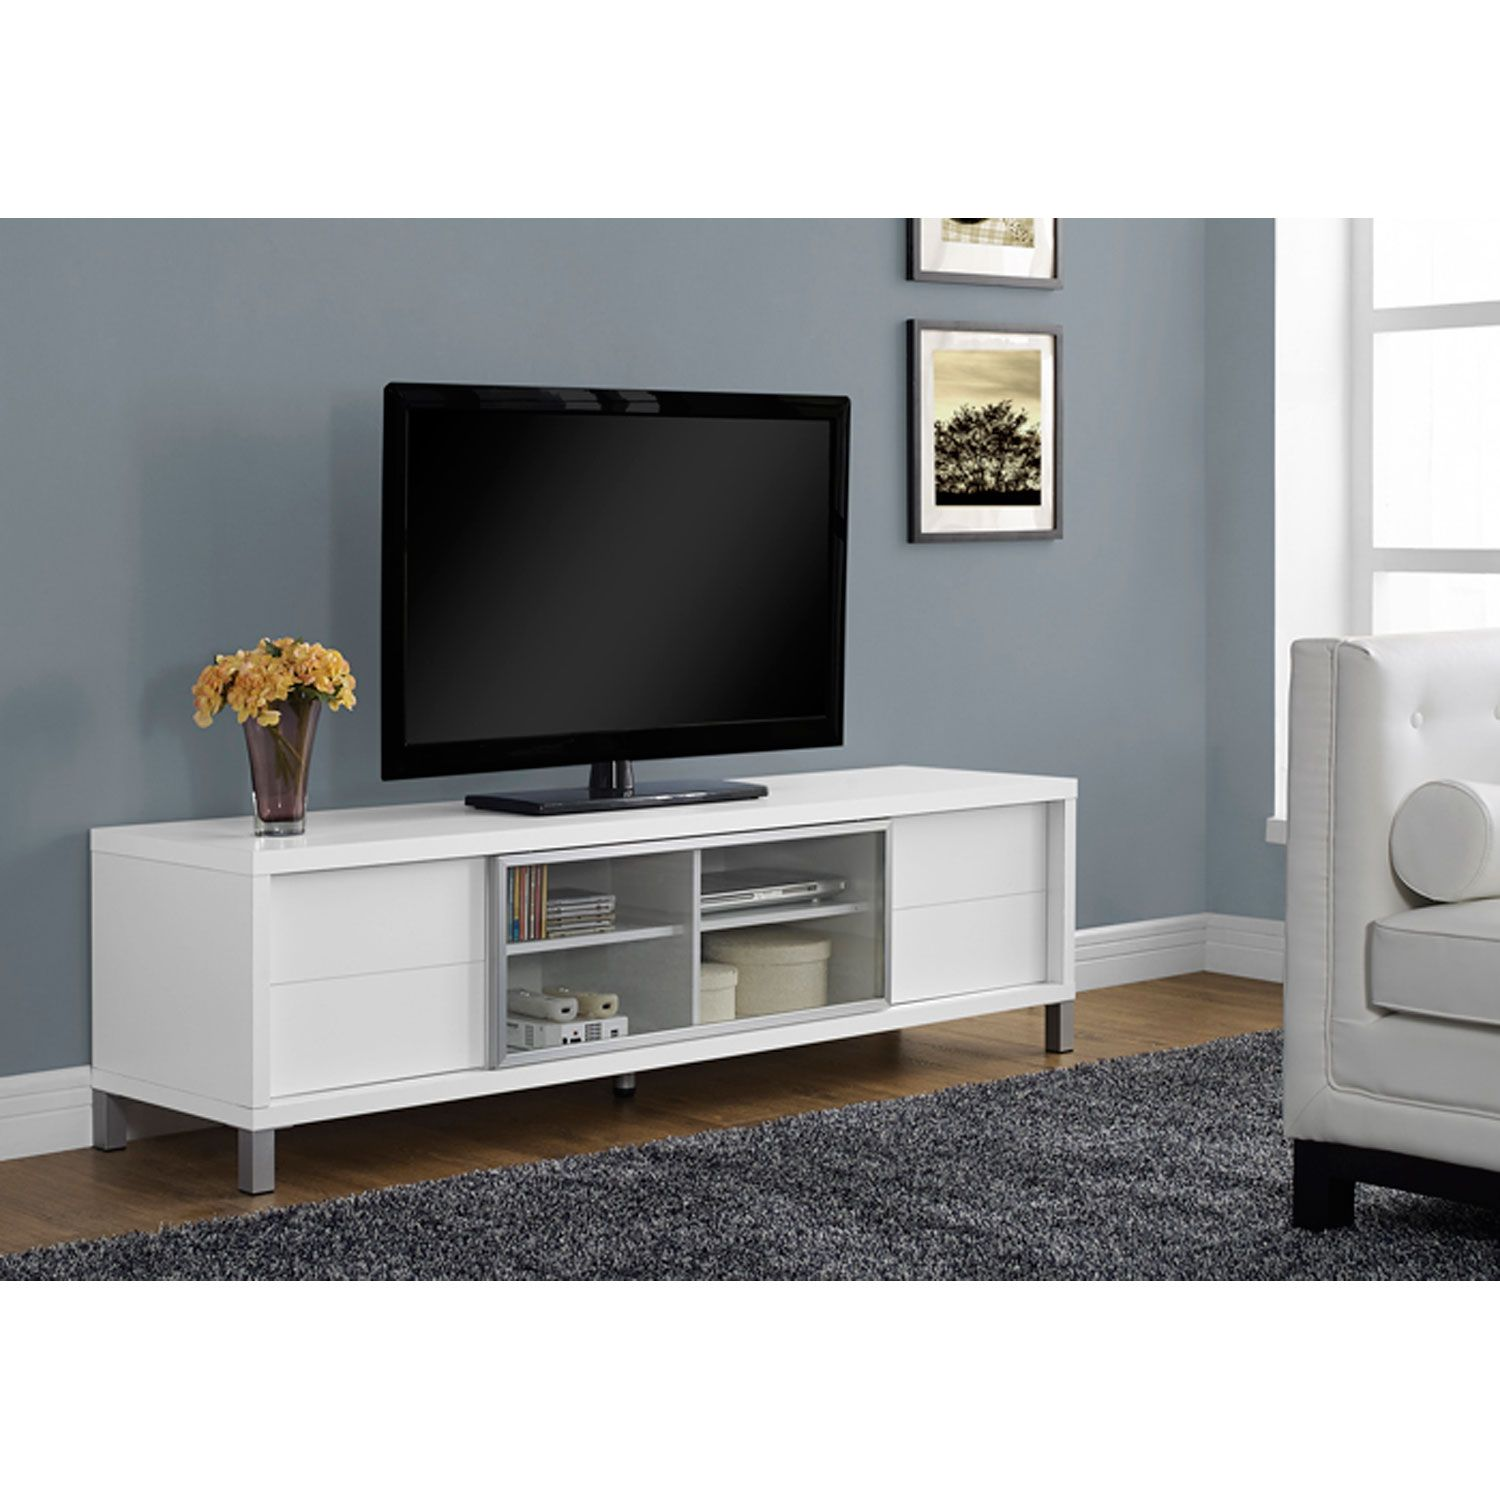 Genial White 70 Inch Tv Console Monarch Specialties Tv Cabinets Tv Stands U0026  Cabinets Home Enterta